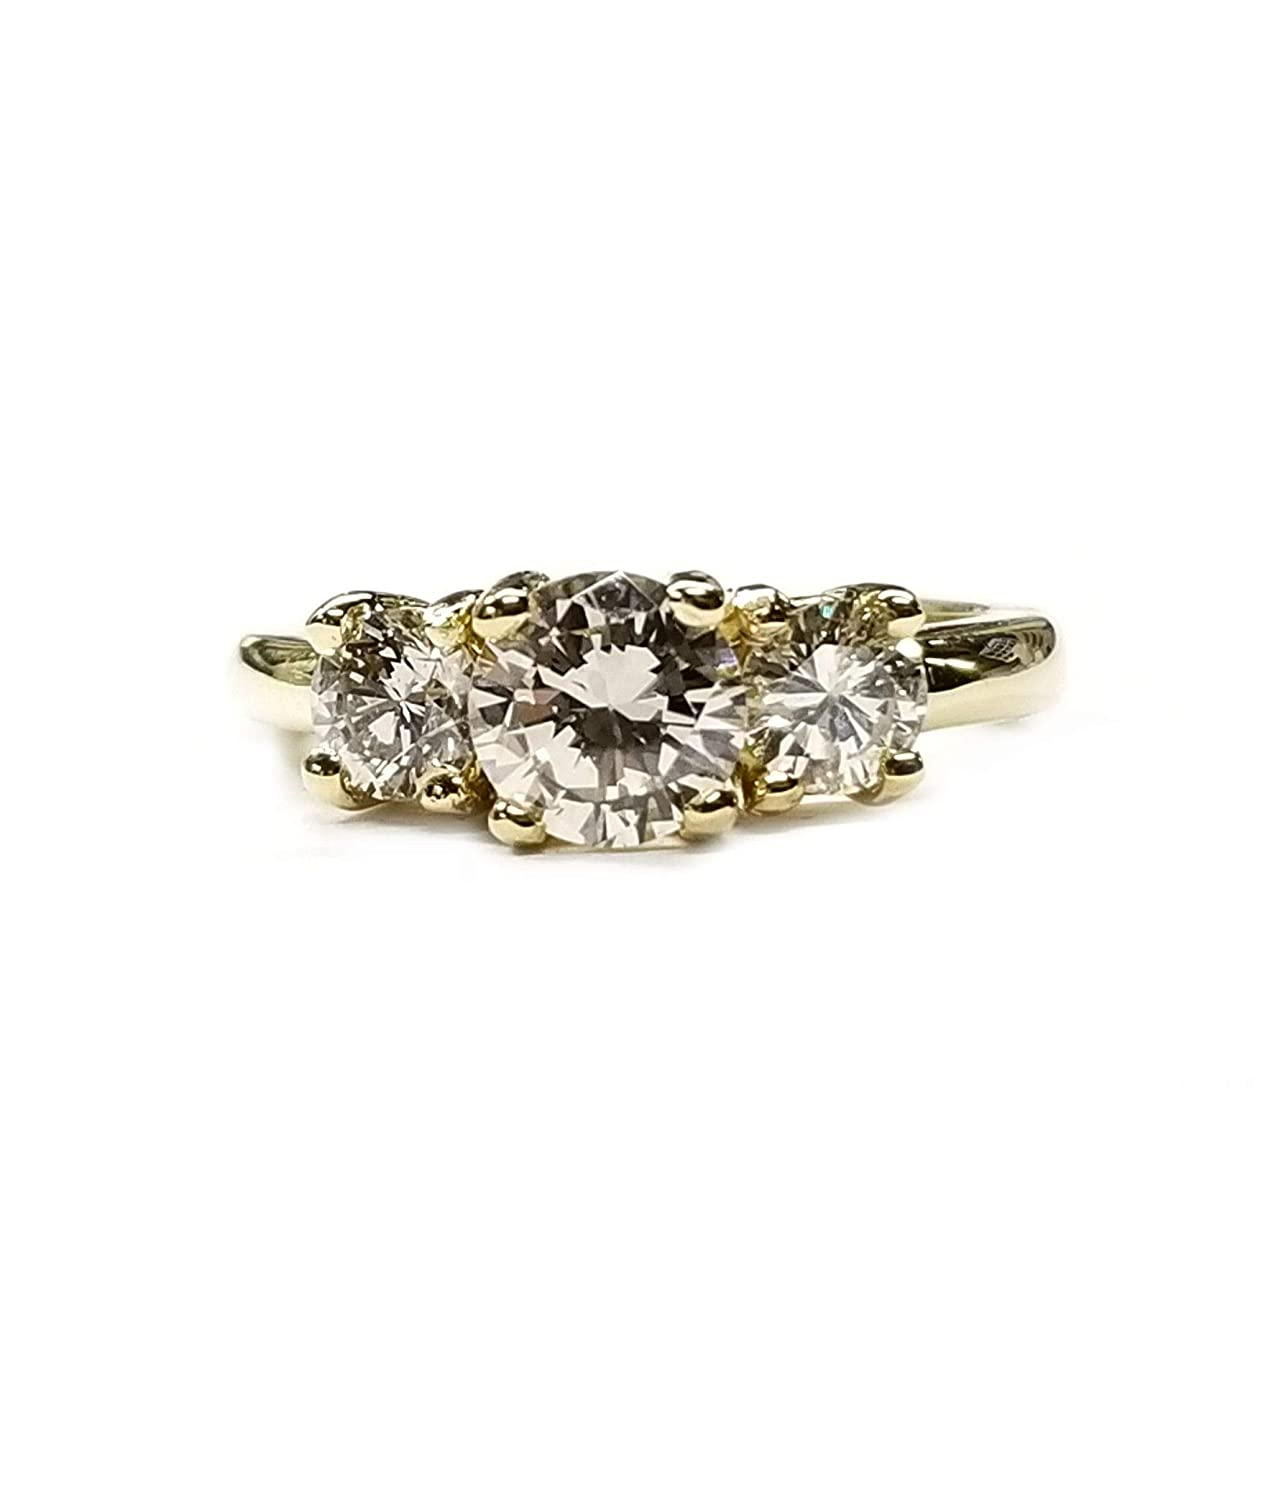 1c8afc8890ab2 Amazon.com  Diamond Engagement Ring 1.79cts. 3 Stone Setting in 18kt Gold   Handmade